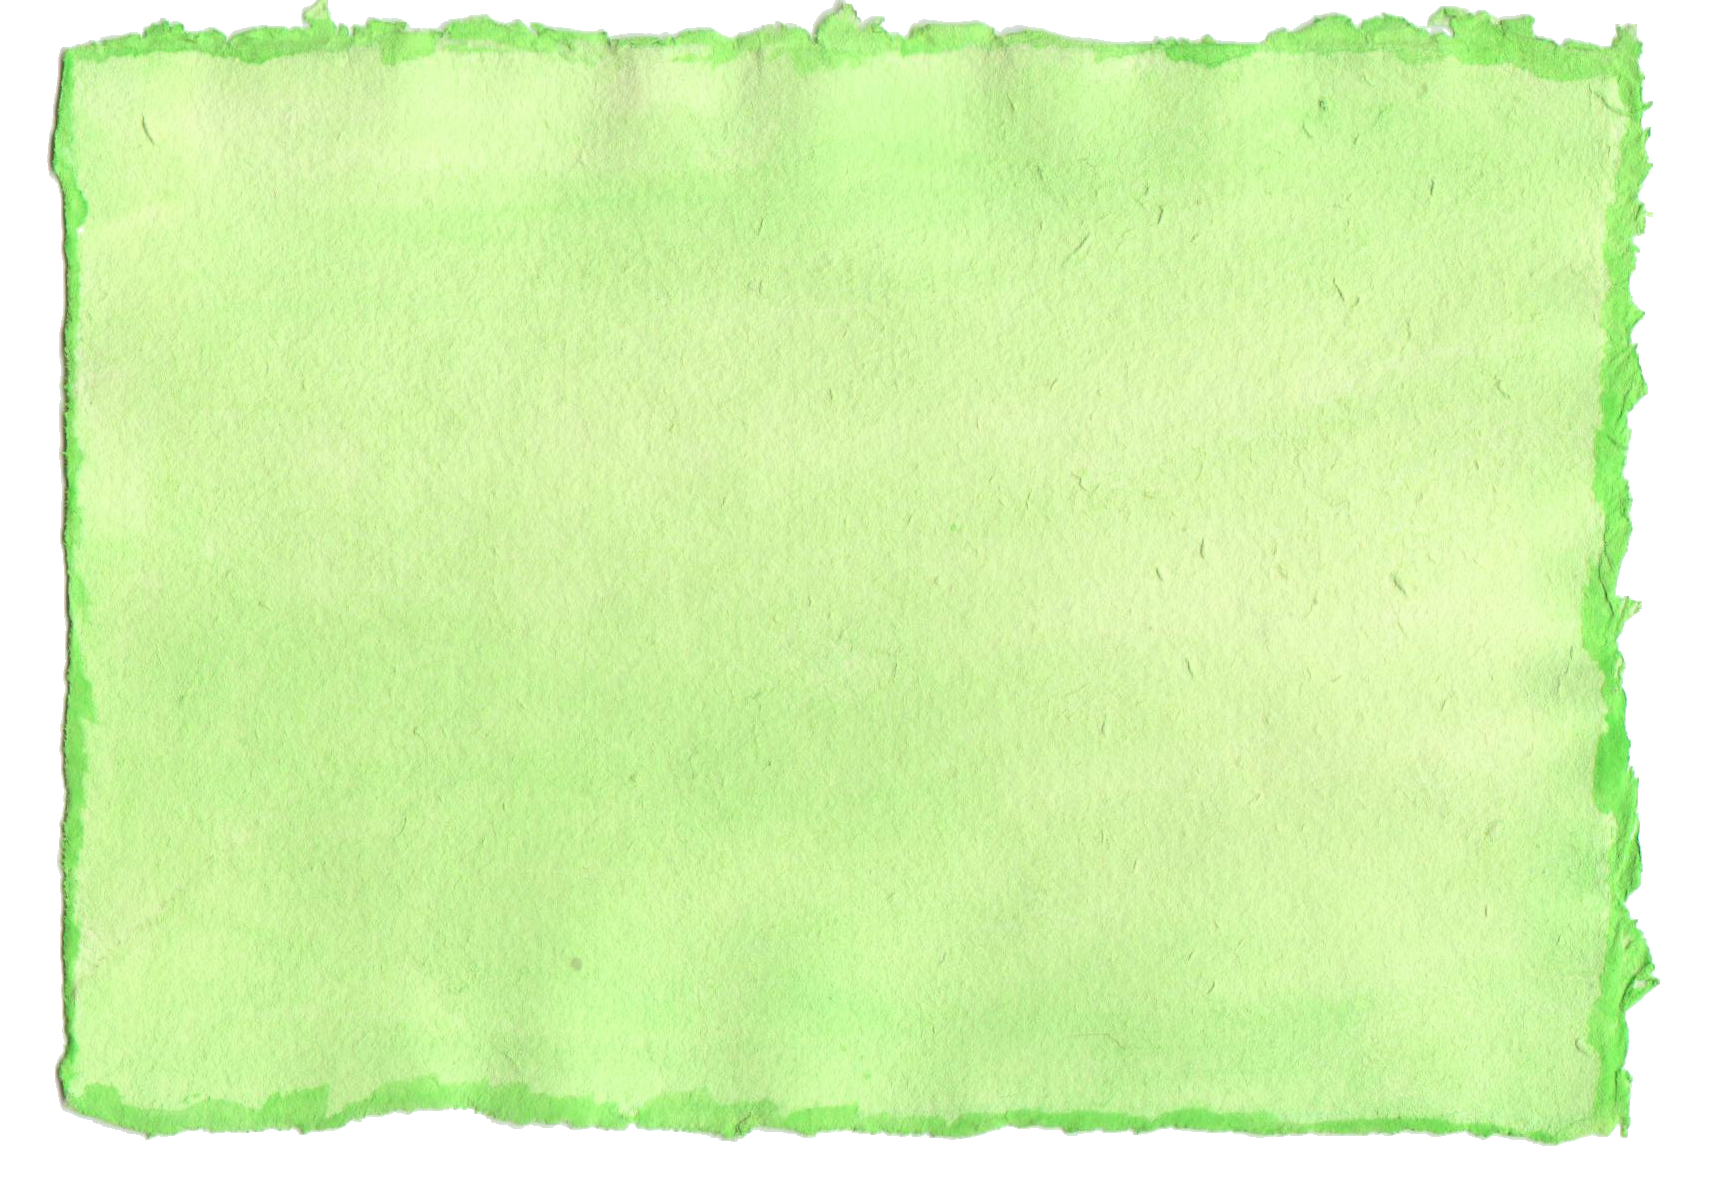 green background frame png